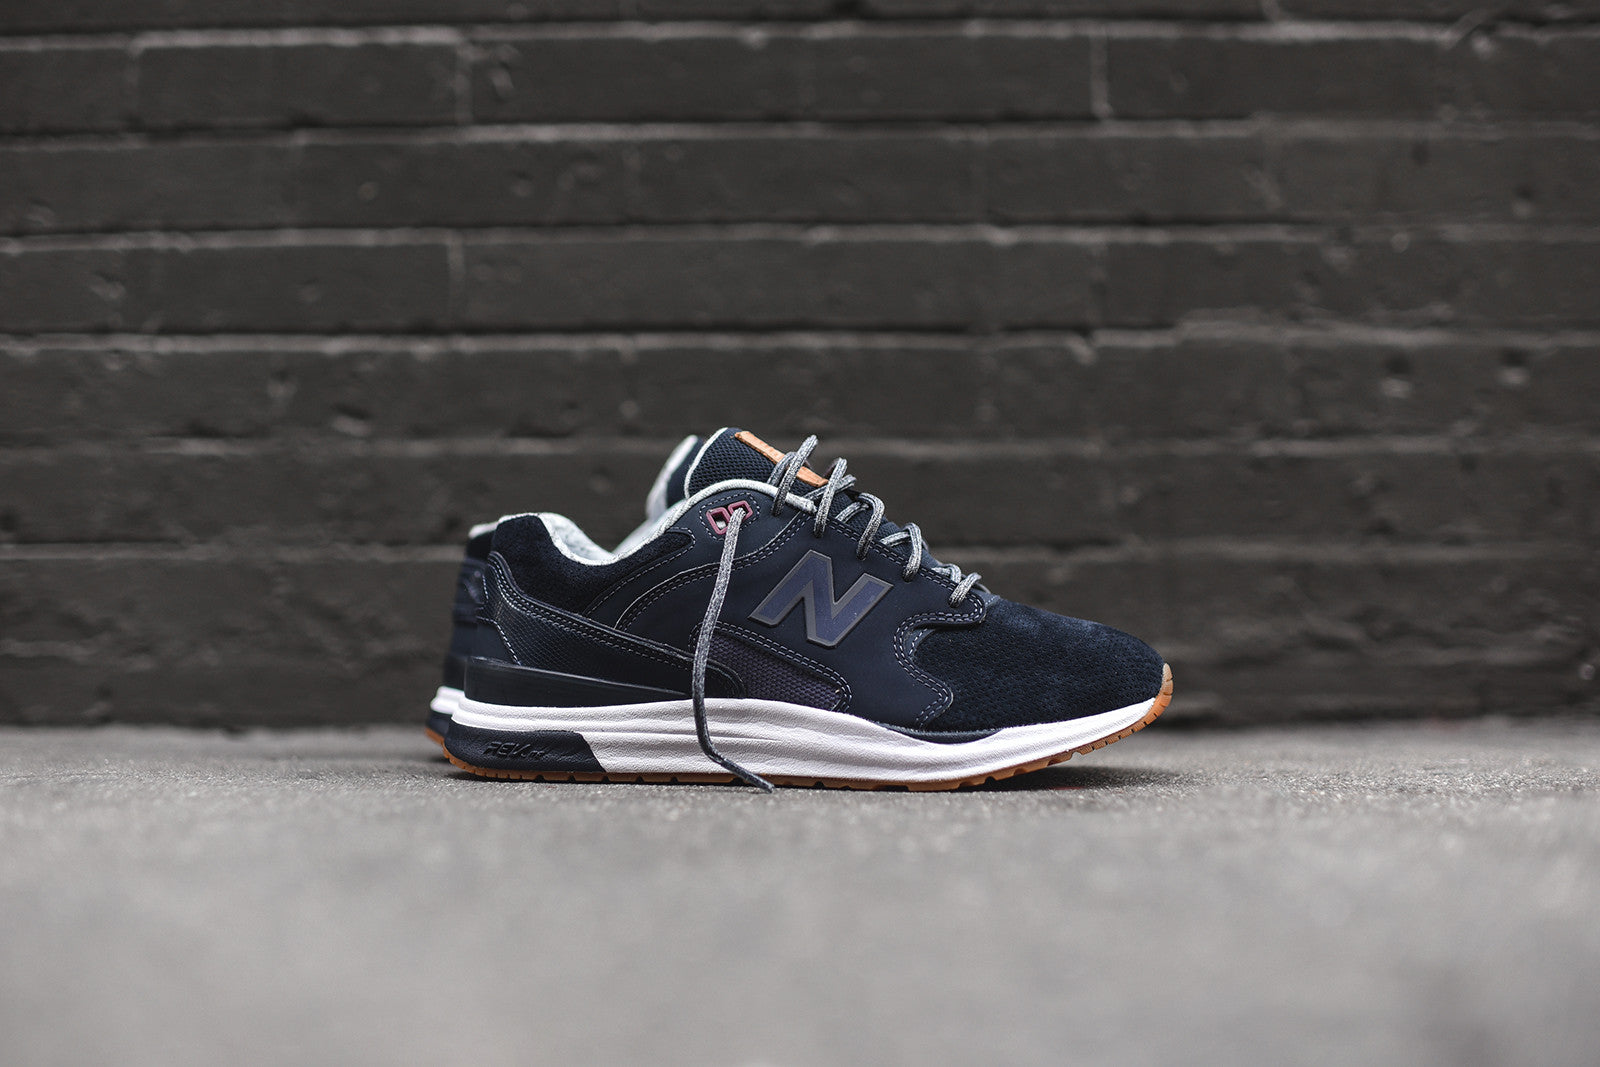 New Balance WMNS 1550 - Outerspace Navy / Solstice